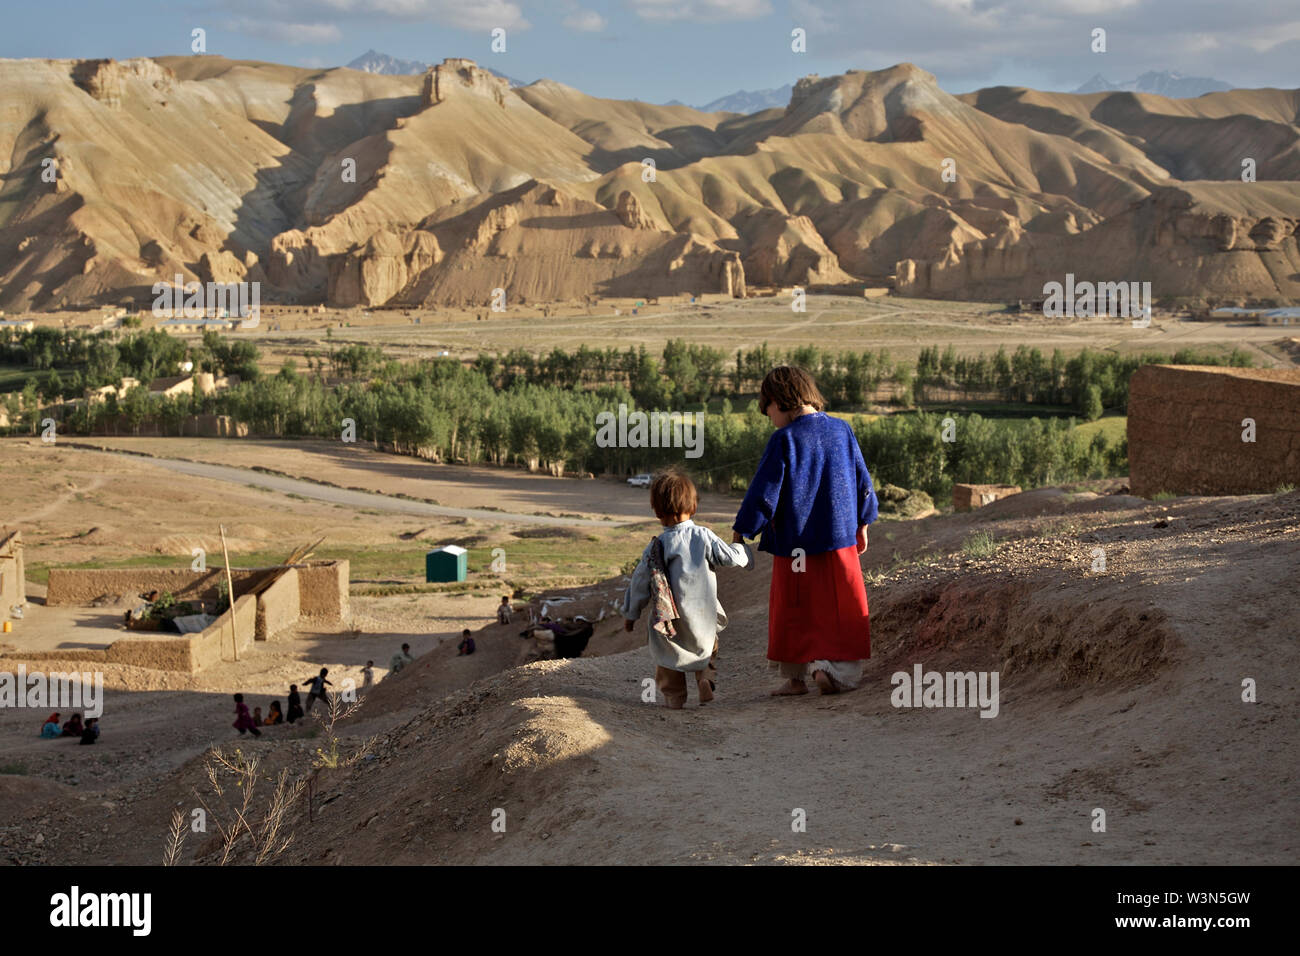 Aqila, 8, leads her 18 month old brother, Abdul Wahid, down the hill, towards other children who are playing in the village of Ragshad, in the central Bamyan Province. Their father works as a daily laborer and the seven children of the family must work up to eight hours a day weaving carpets besides attending school. It takes two months for the family to make a 5 square-meter carpet, worth 800 Afghans, about US $24. The house has no running water or gas, so the older boys walk two hours every day to collect water from a local stream and firewood from the mountains. Ragshad, Bamyan province, Af - Stock Image